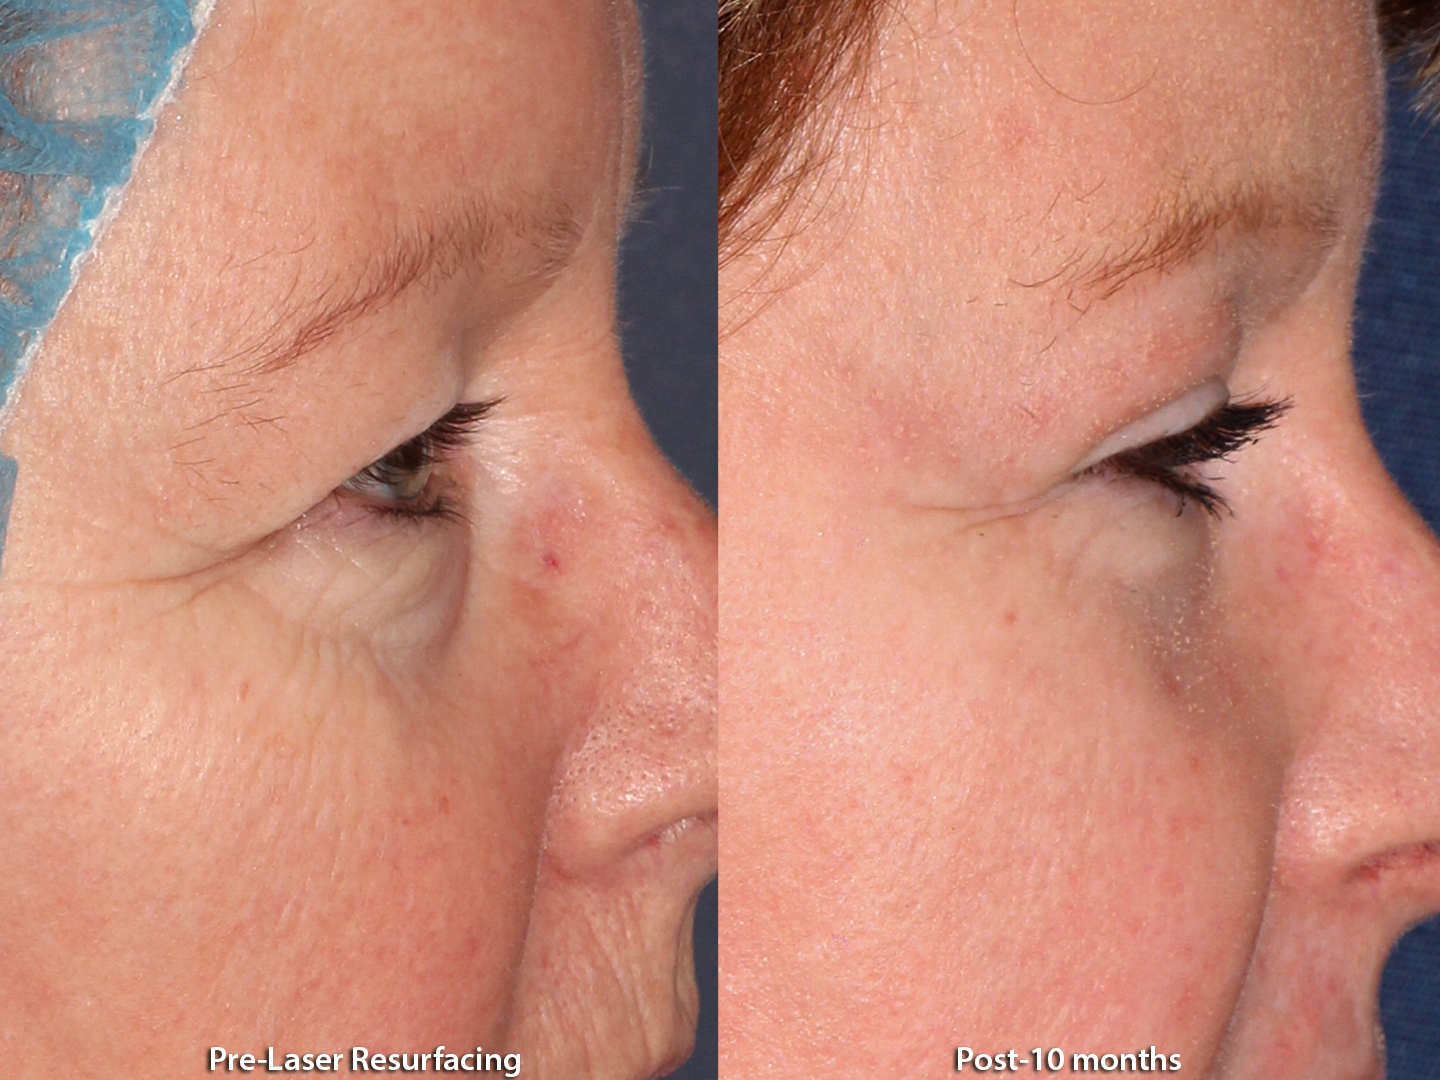 Actual unretouched patient before and after laser resurfacing by Dr. Groff. Disclaimer: Results may vary from patient to patient. Results are not guaranteed.